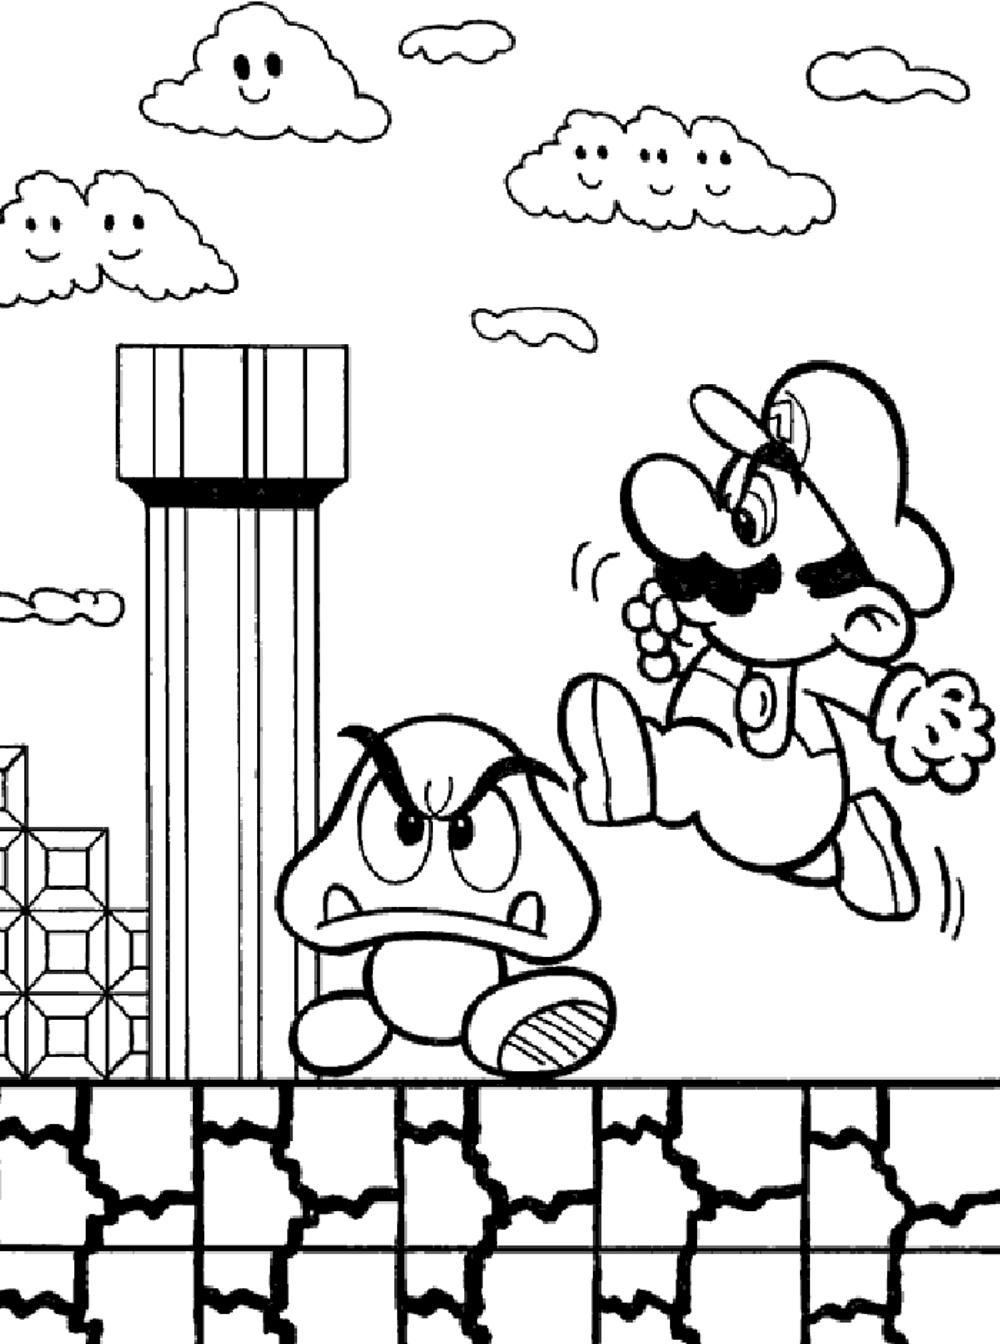 super mario brothers printables coloring pages mario coloring pages free and printable mario super brothers printables